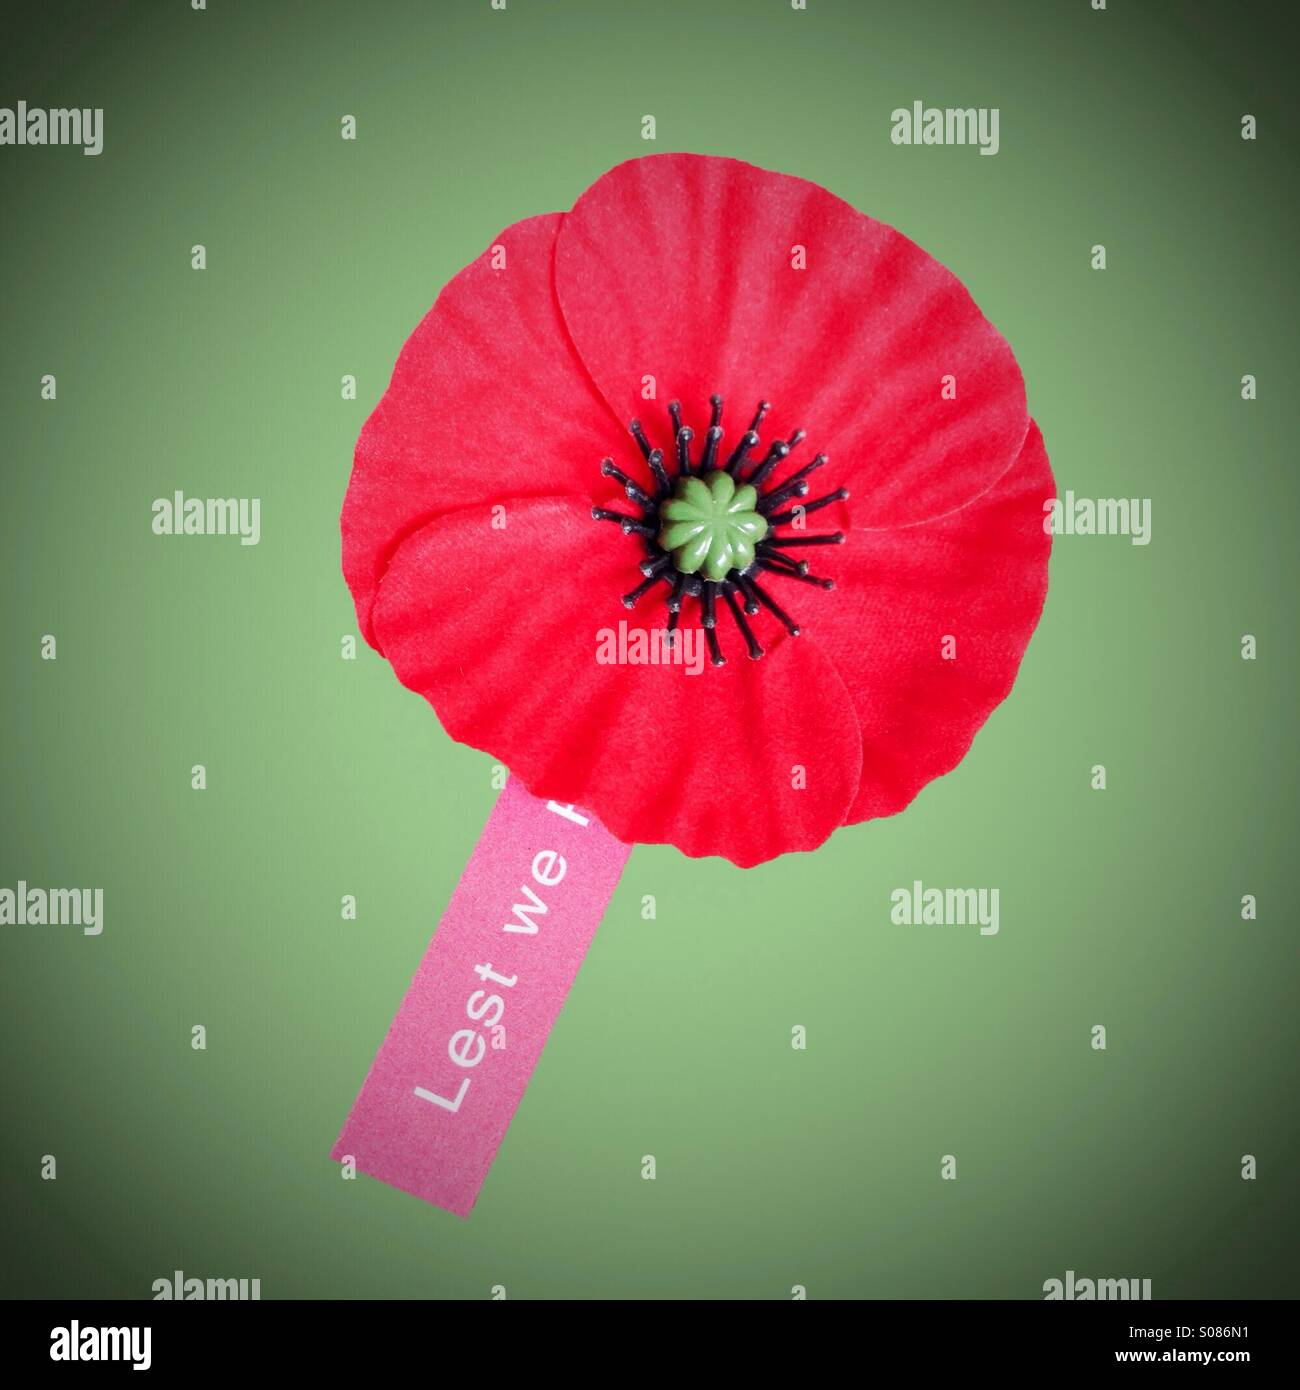 Remembrance Day red poppy with lest we forget tag attached. Green background. - Stock Image